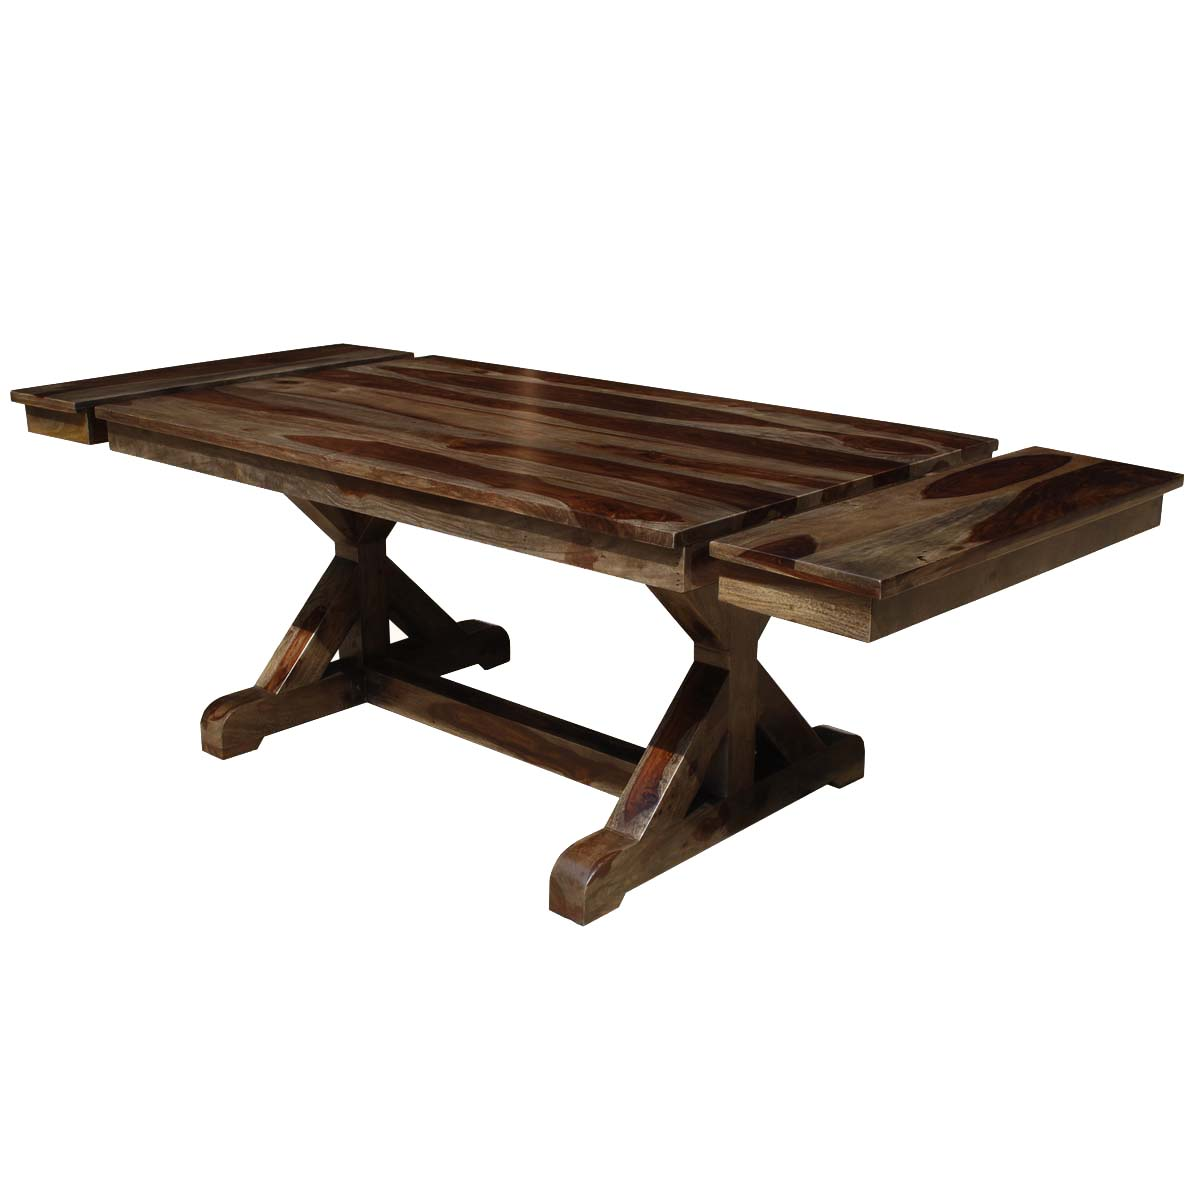 rustic wood dining table base photo - 5